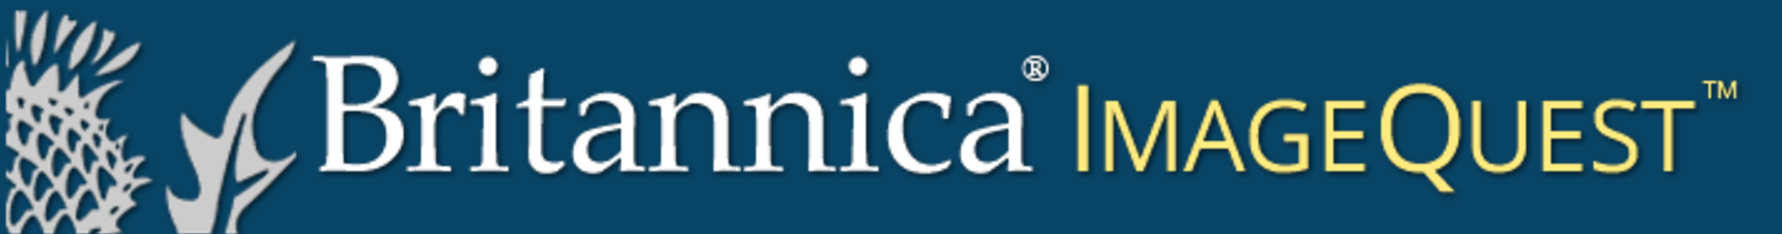 User ID: aislstudent  Use Britannica's Image Quest to search millions of rights-cleared images. You can add these to your folder within Britannica. Properly formatted MLA citations are available for any image you find.